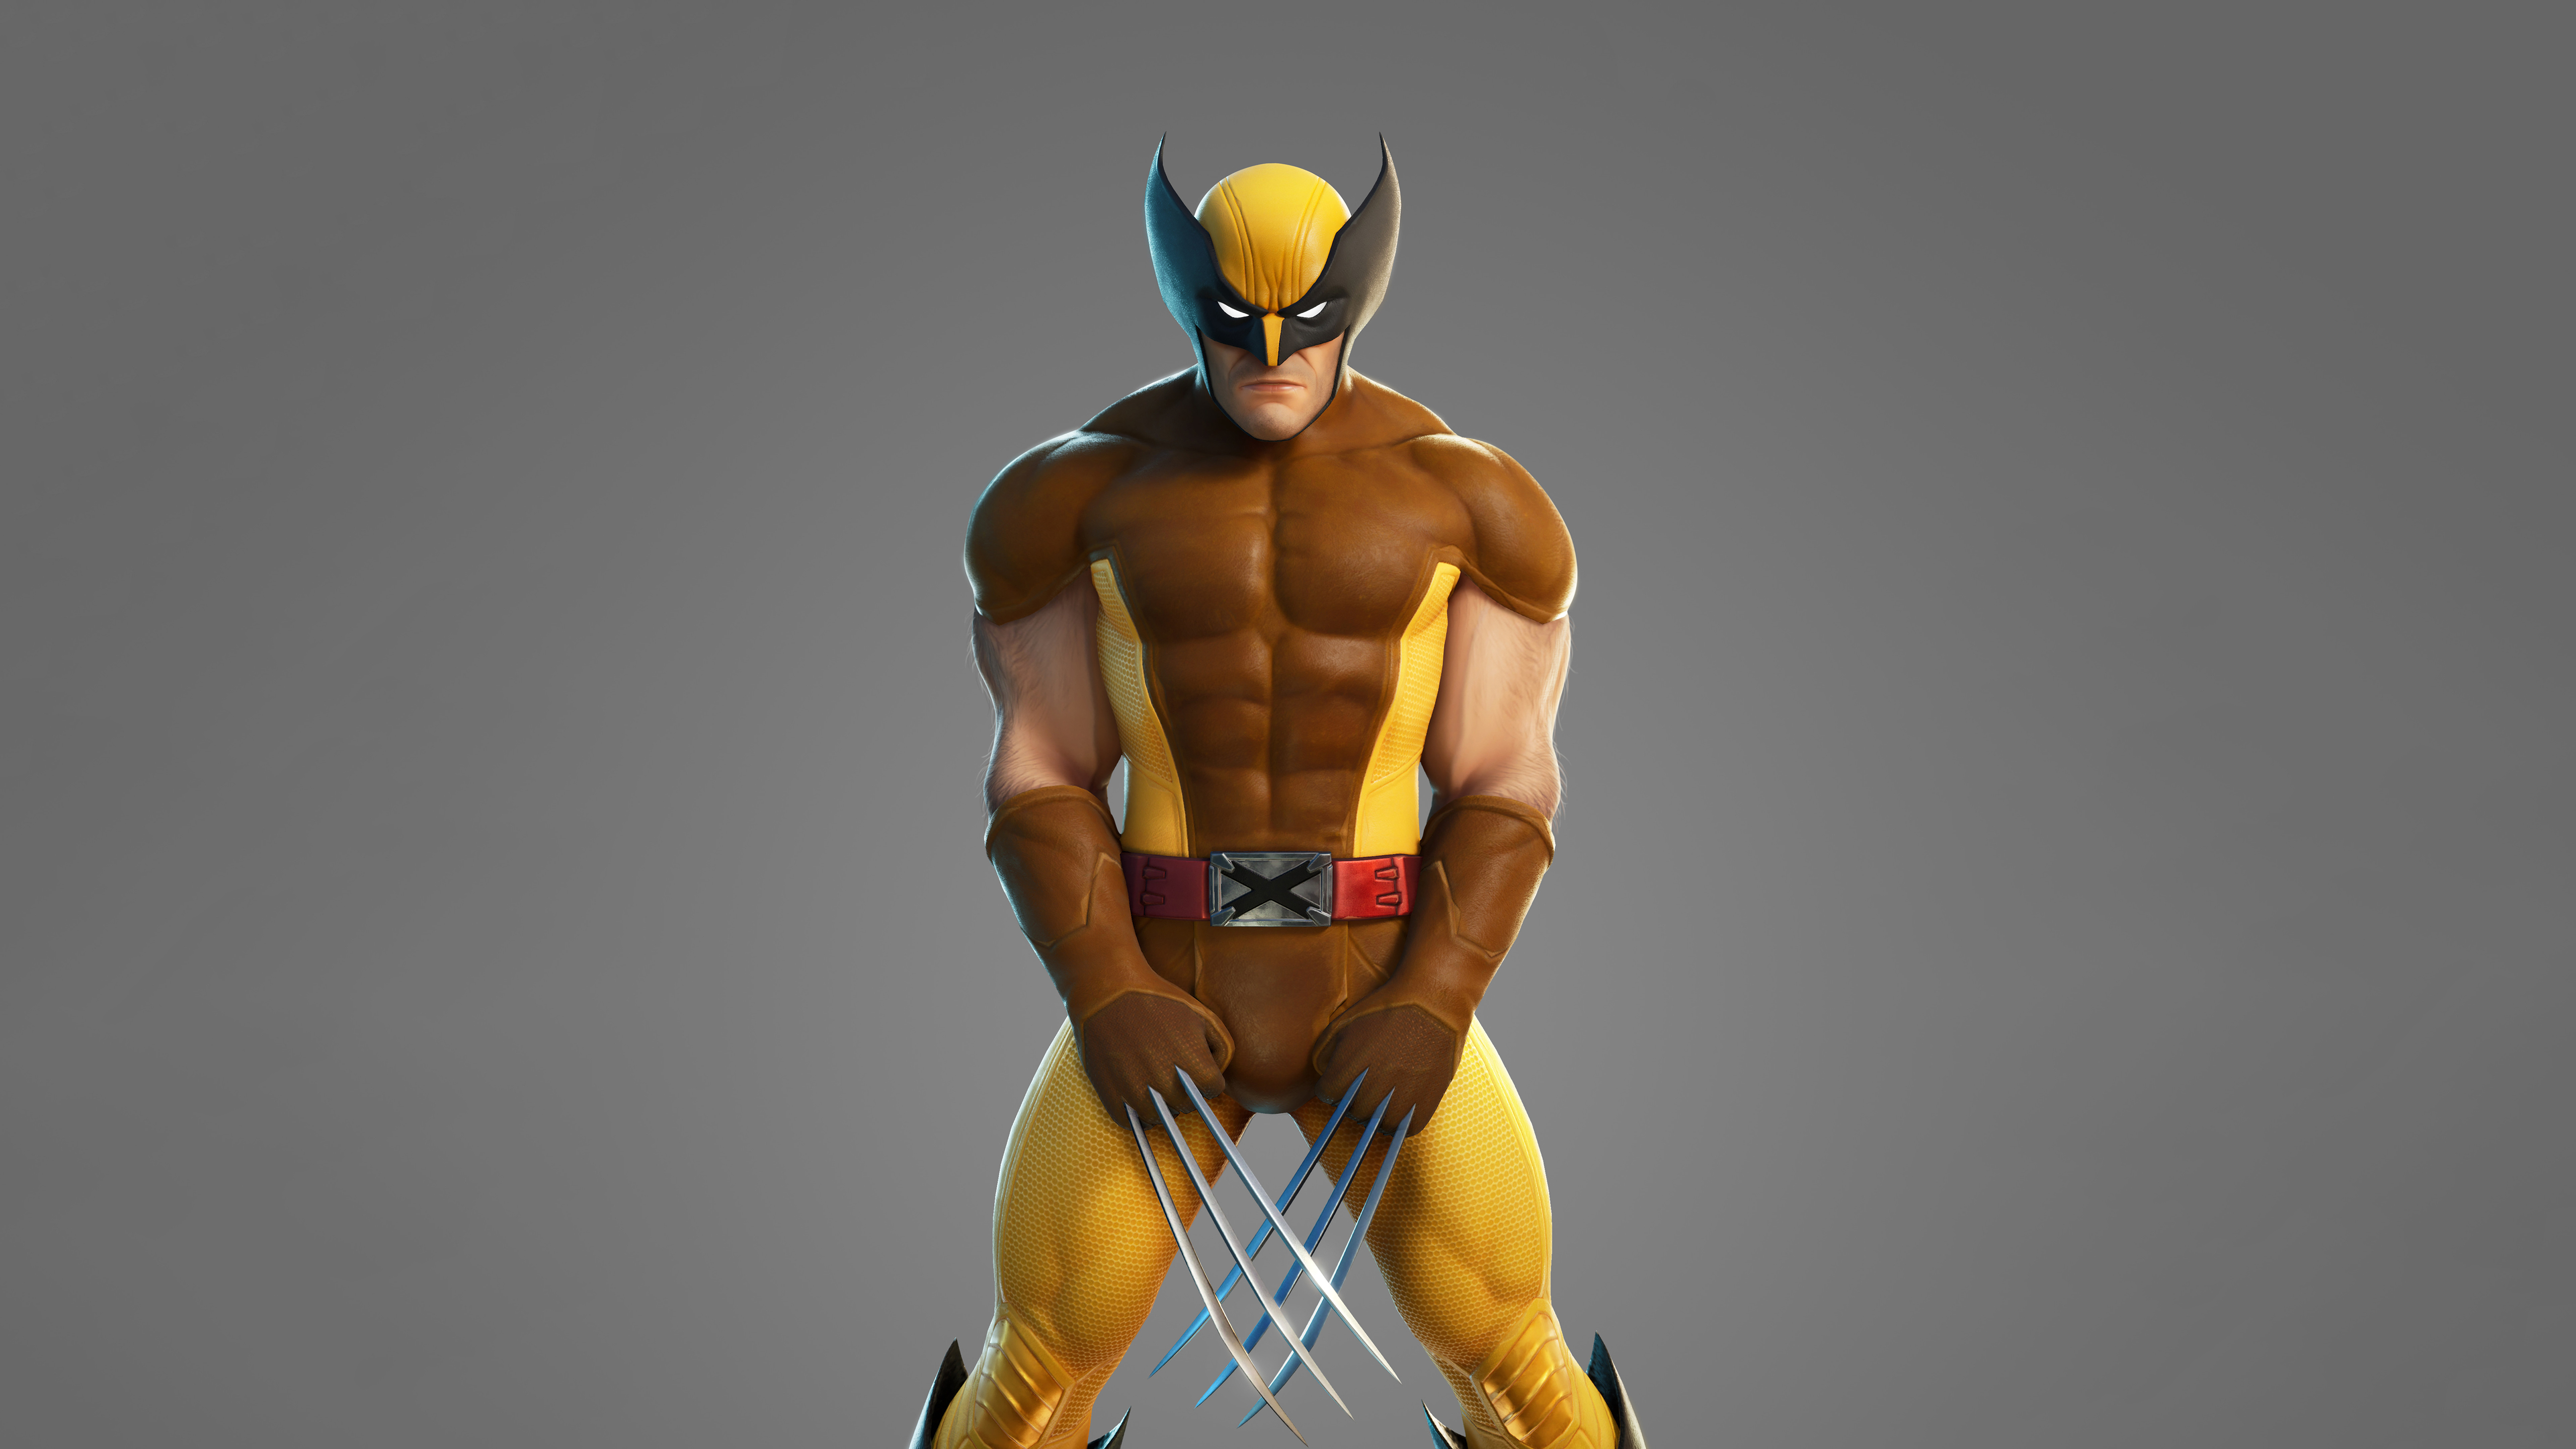 5120x2880 Wolverine Fortnite 5k Wallpaper Hd Games 4k Wallpapers Images Photos And Background